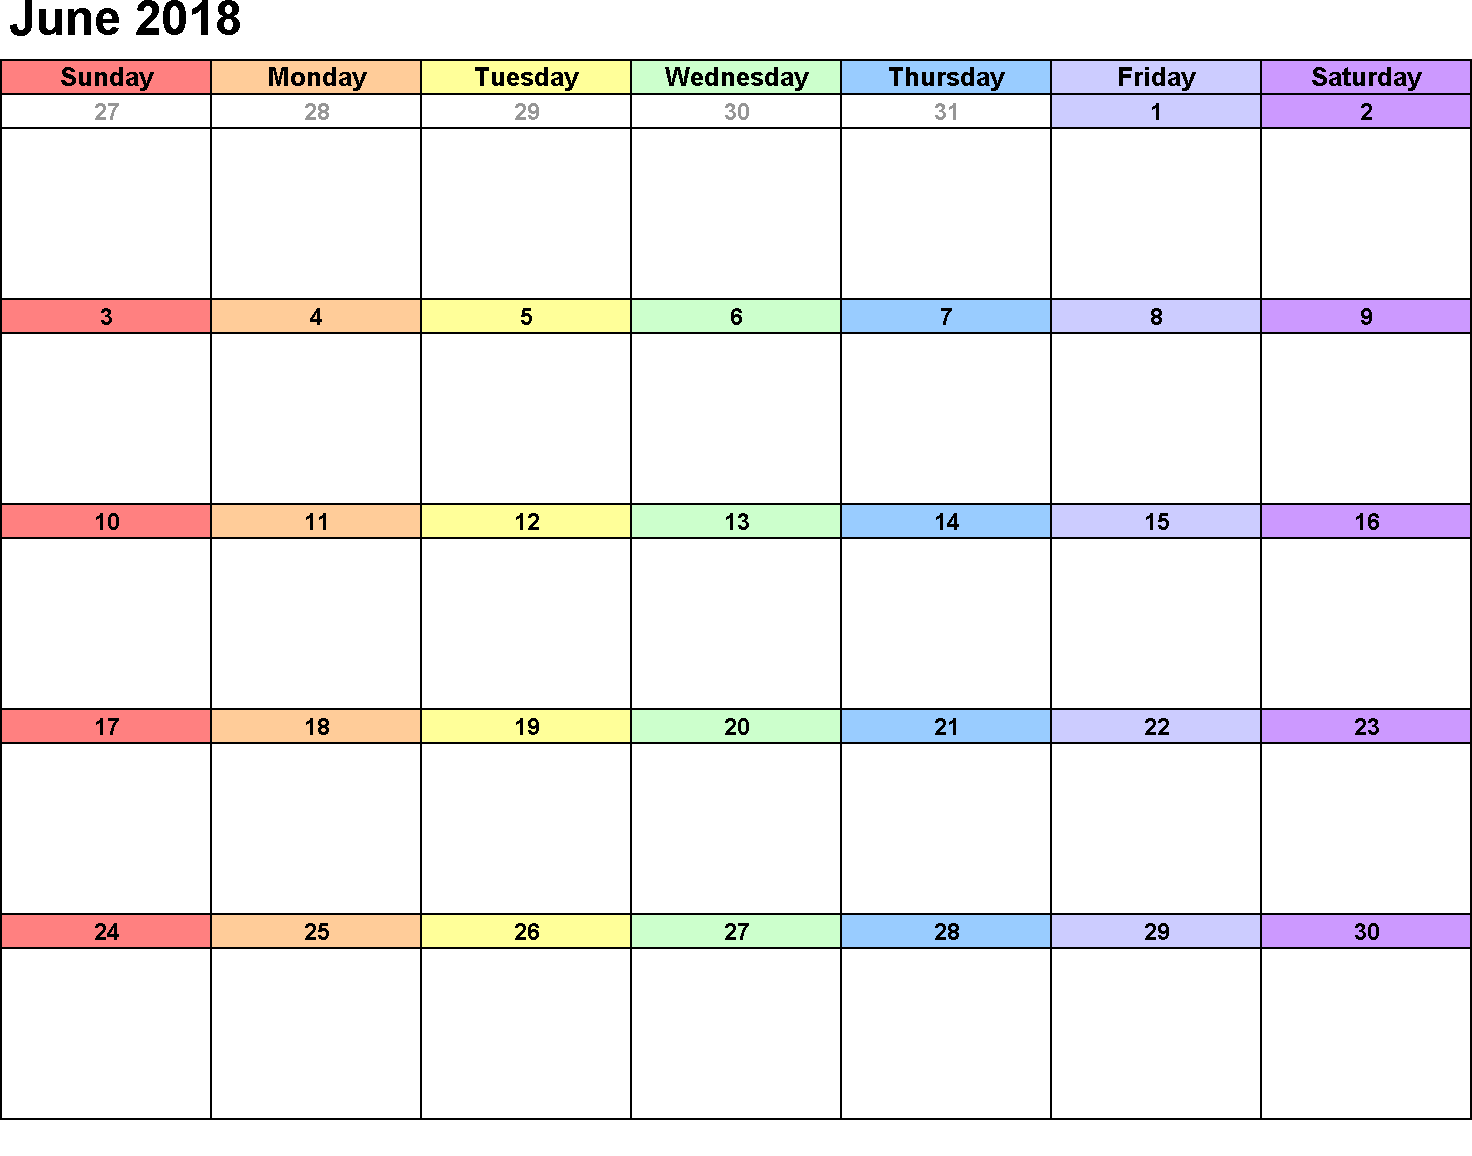 June 2018 Calendar Template Colorful Idea